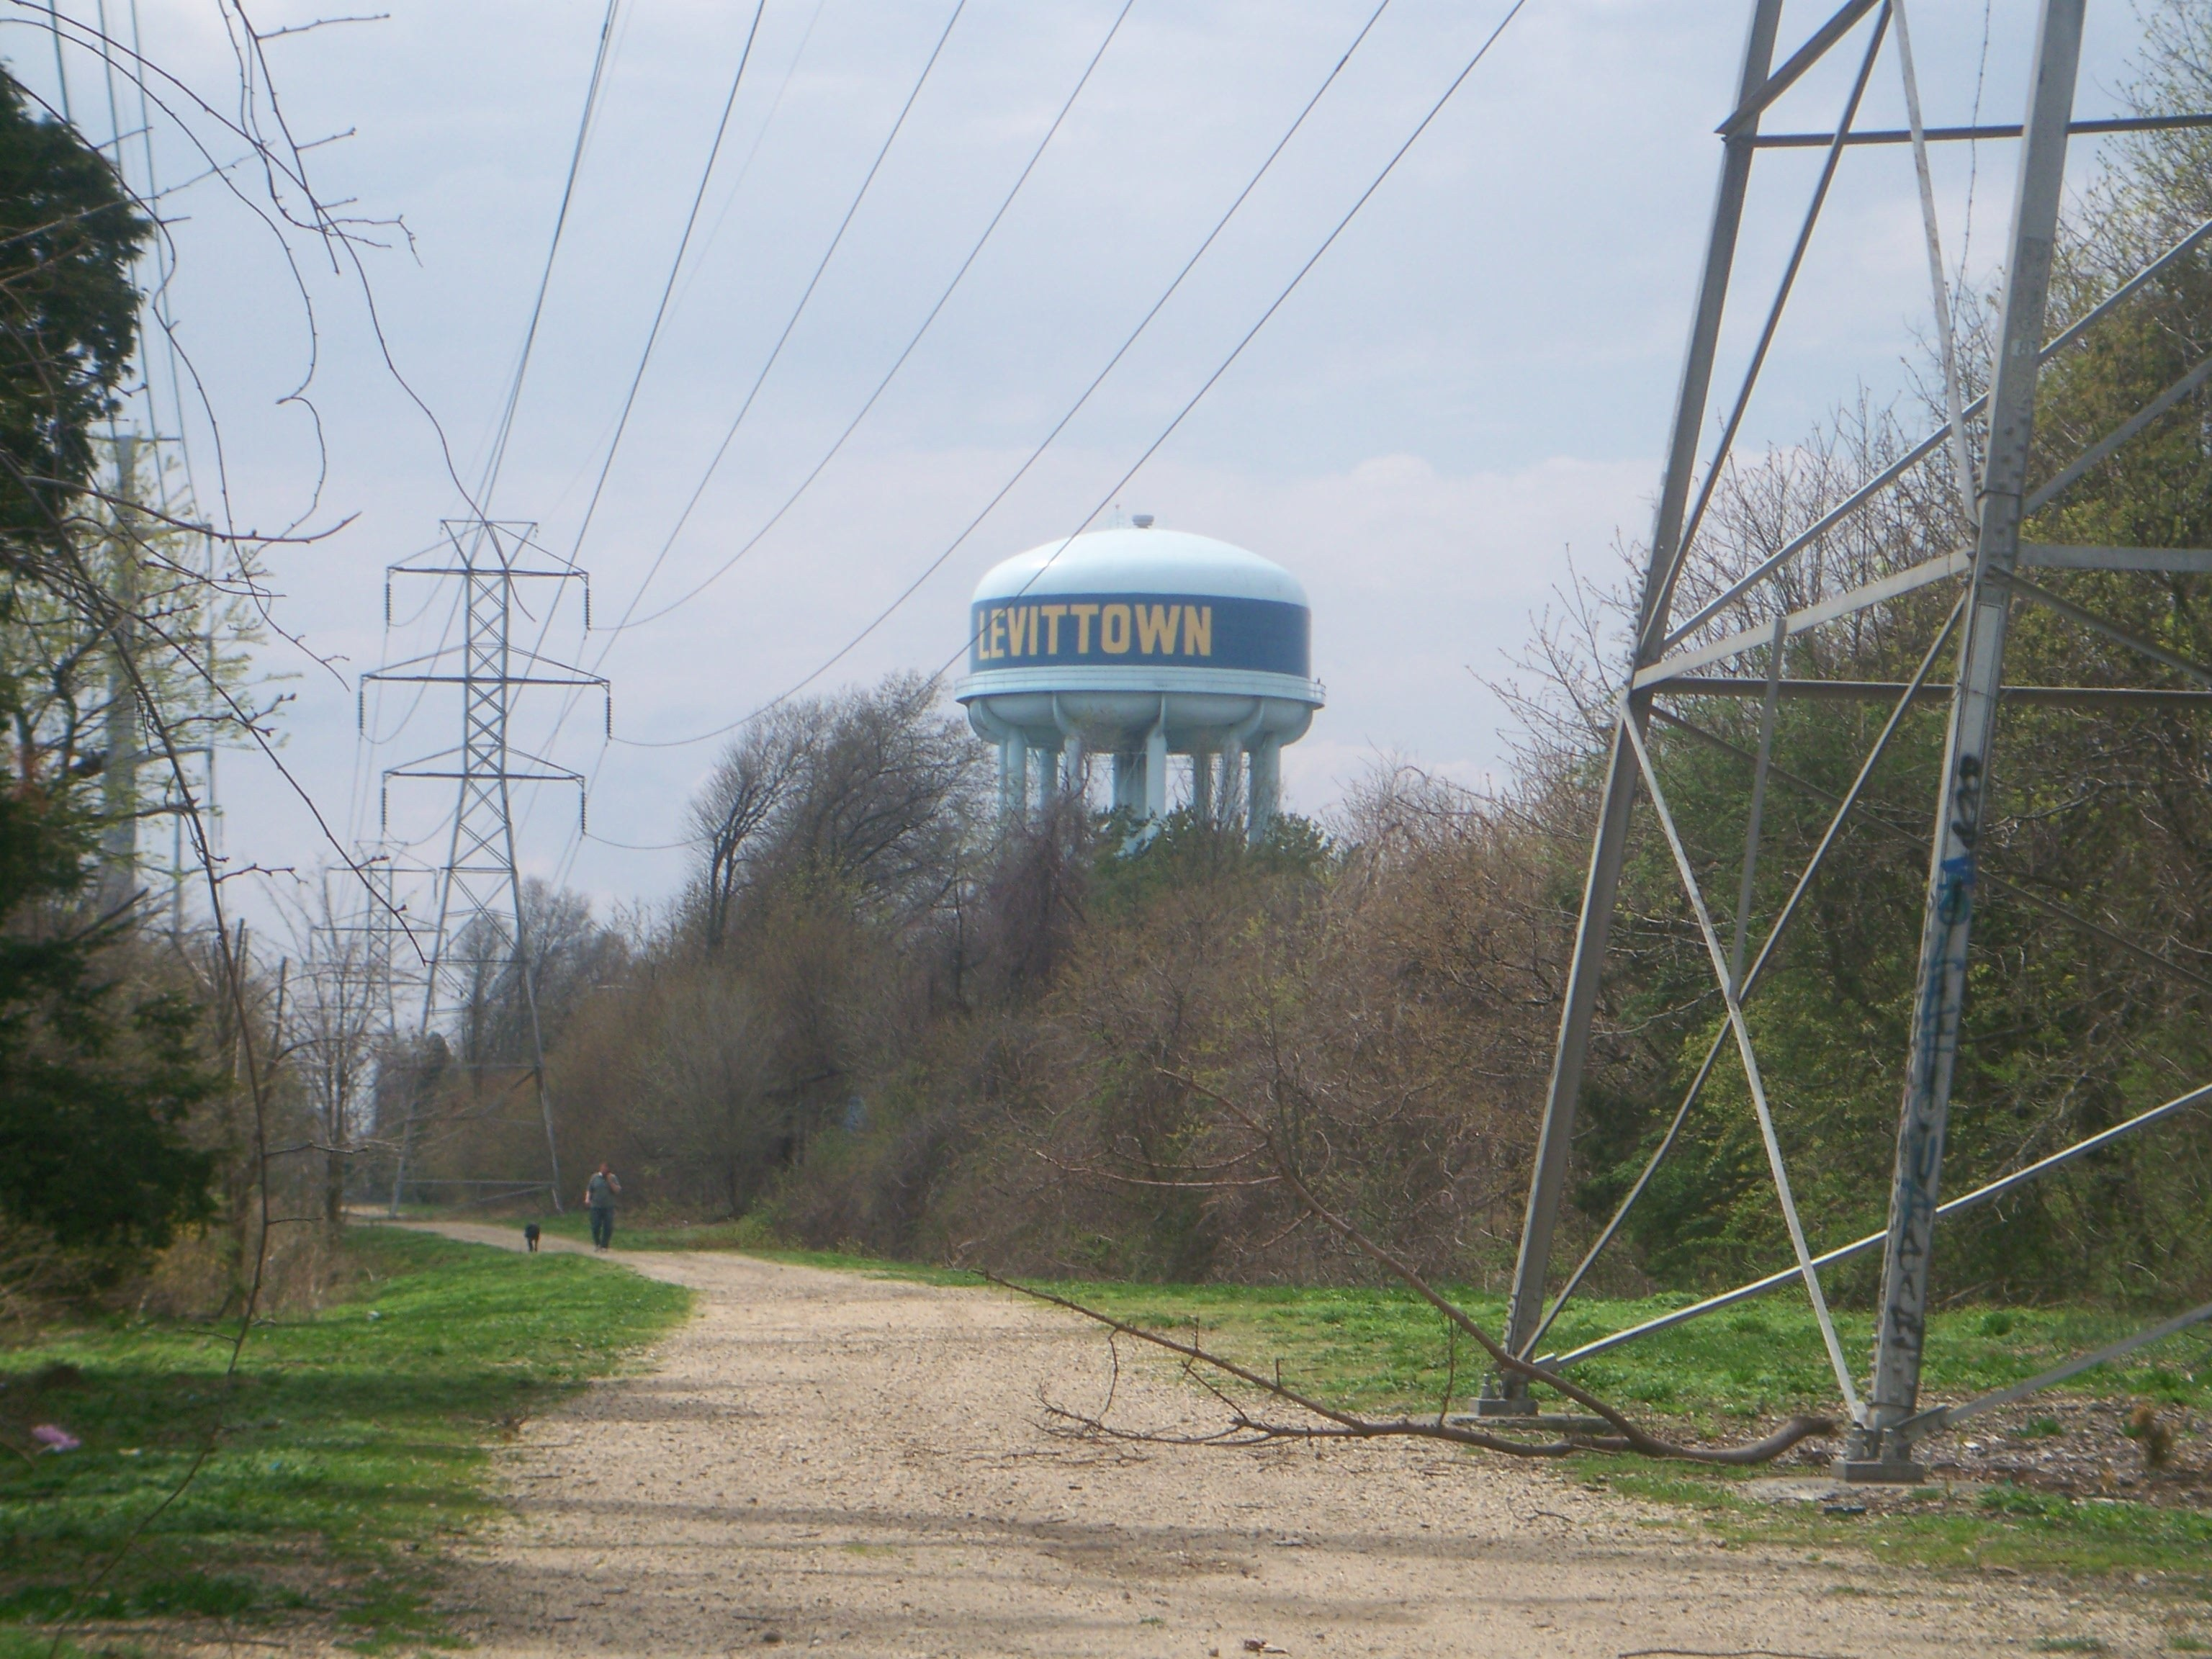 What did Levittown, LI, NY look like when you were a kid